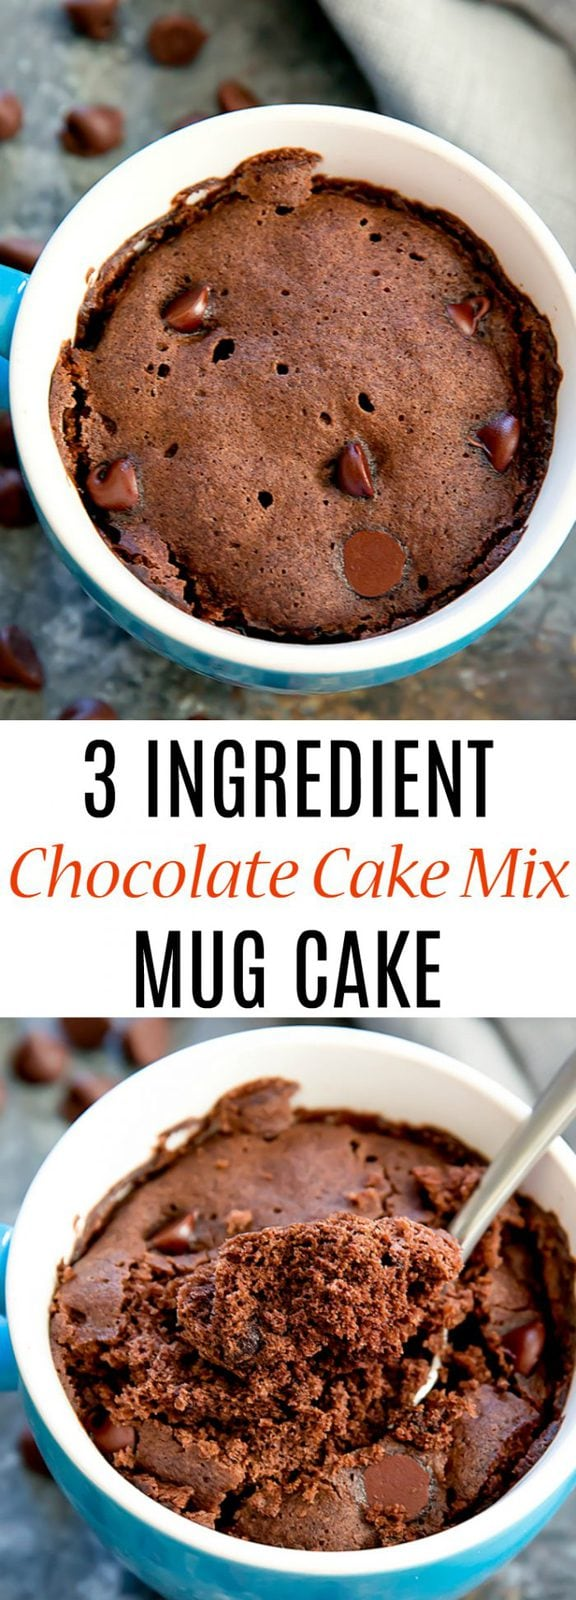 3 Ingredient Chocolate Cake Mix Mug Cake Kirbie S Cravings